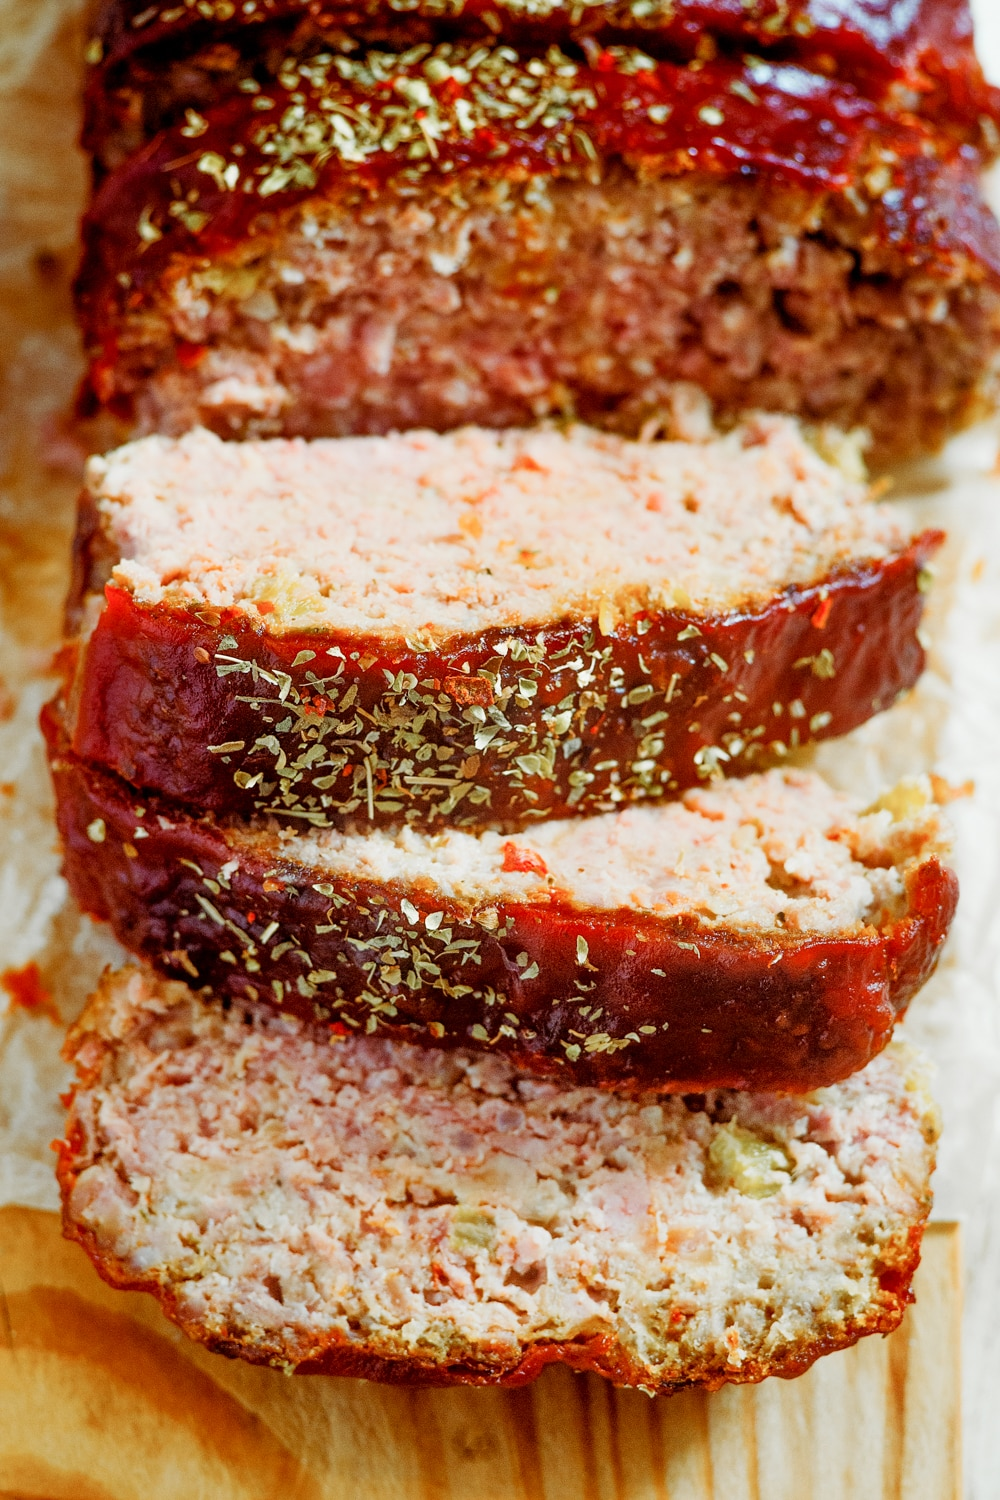 Meatloaf slices stacked on top of one another.